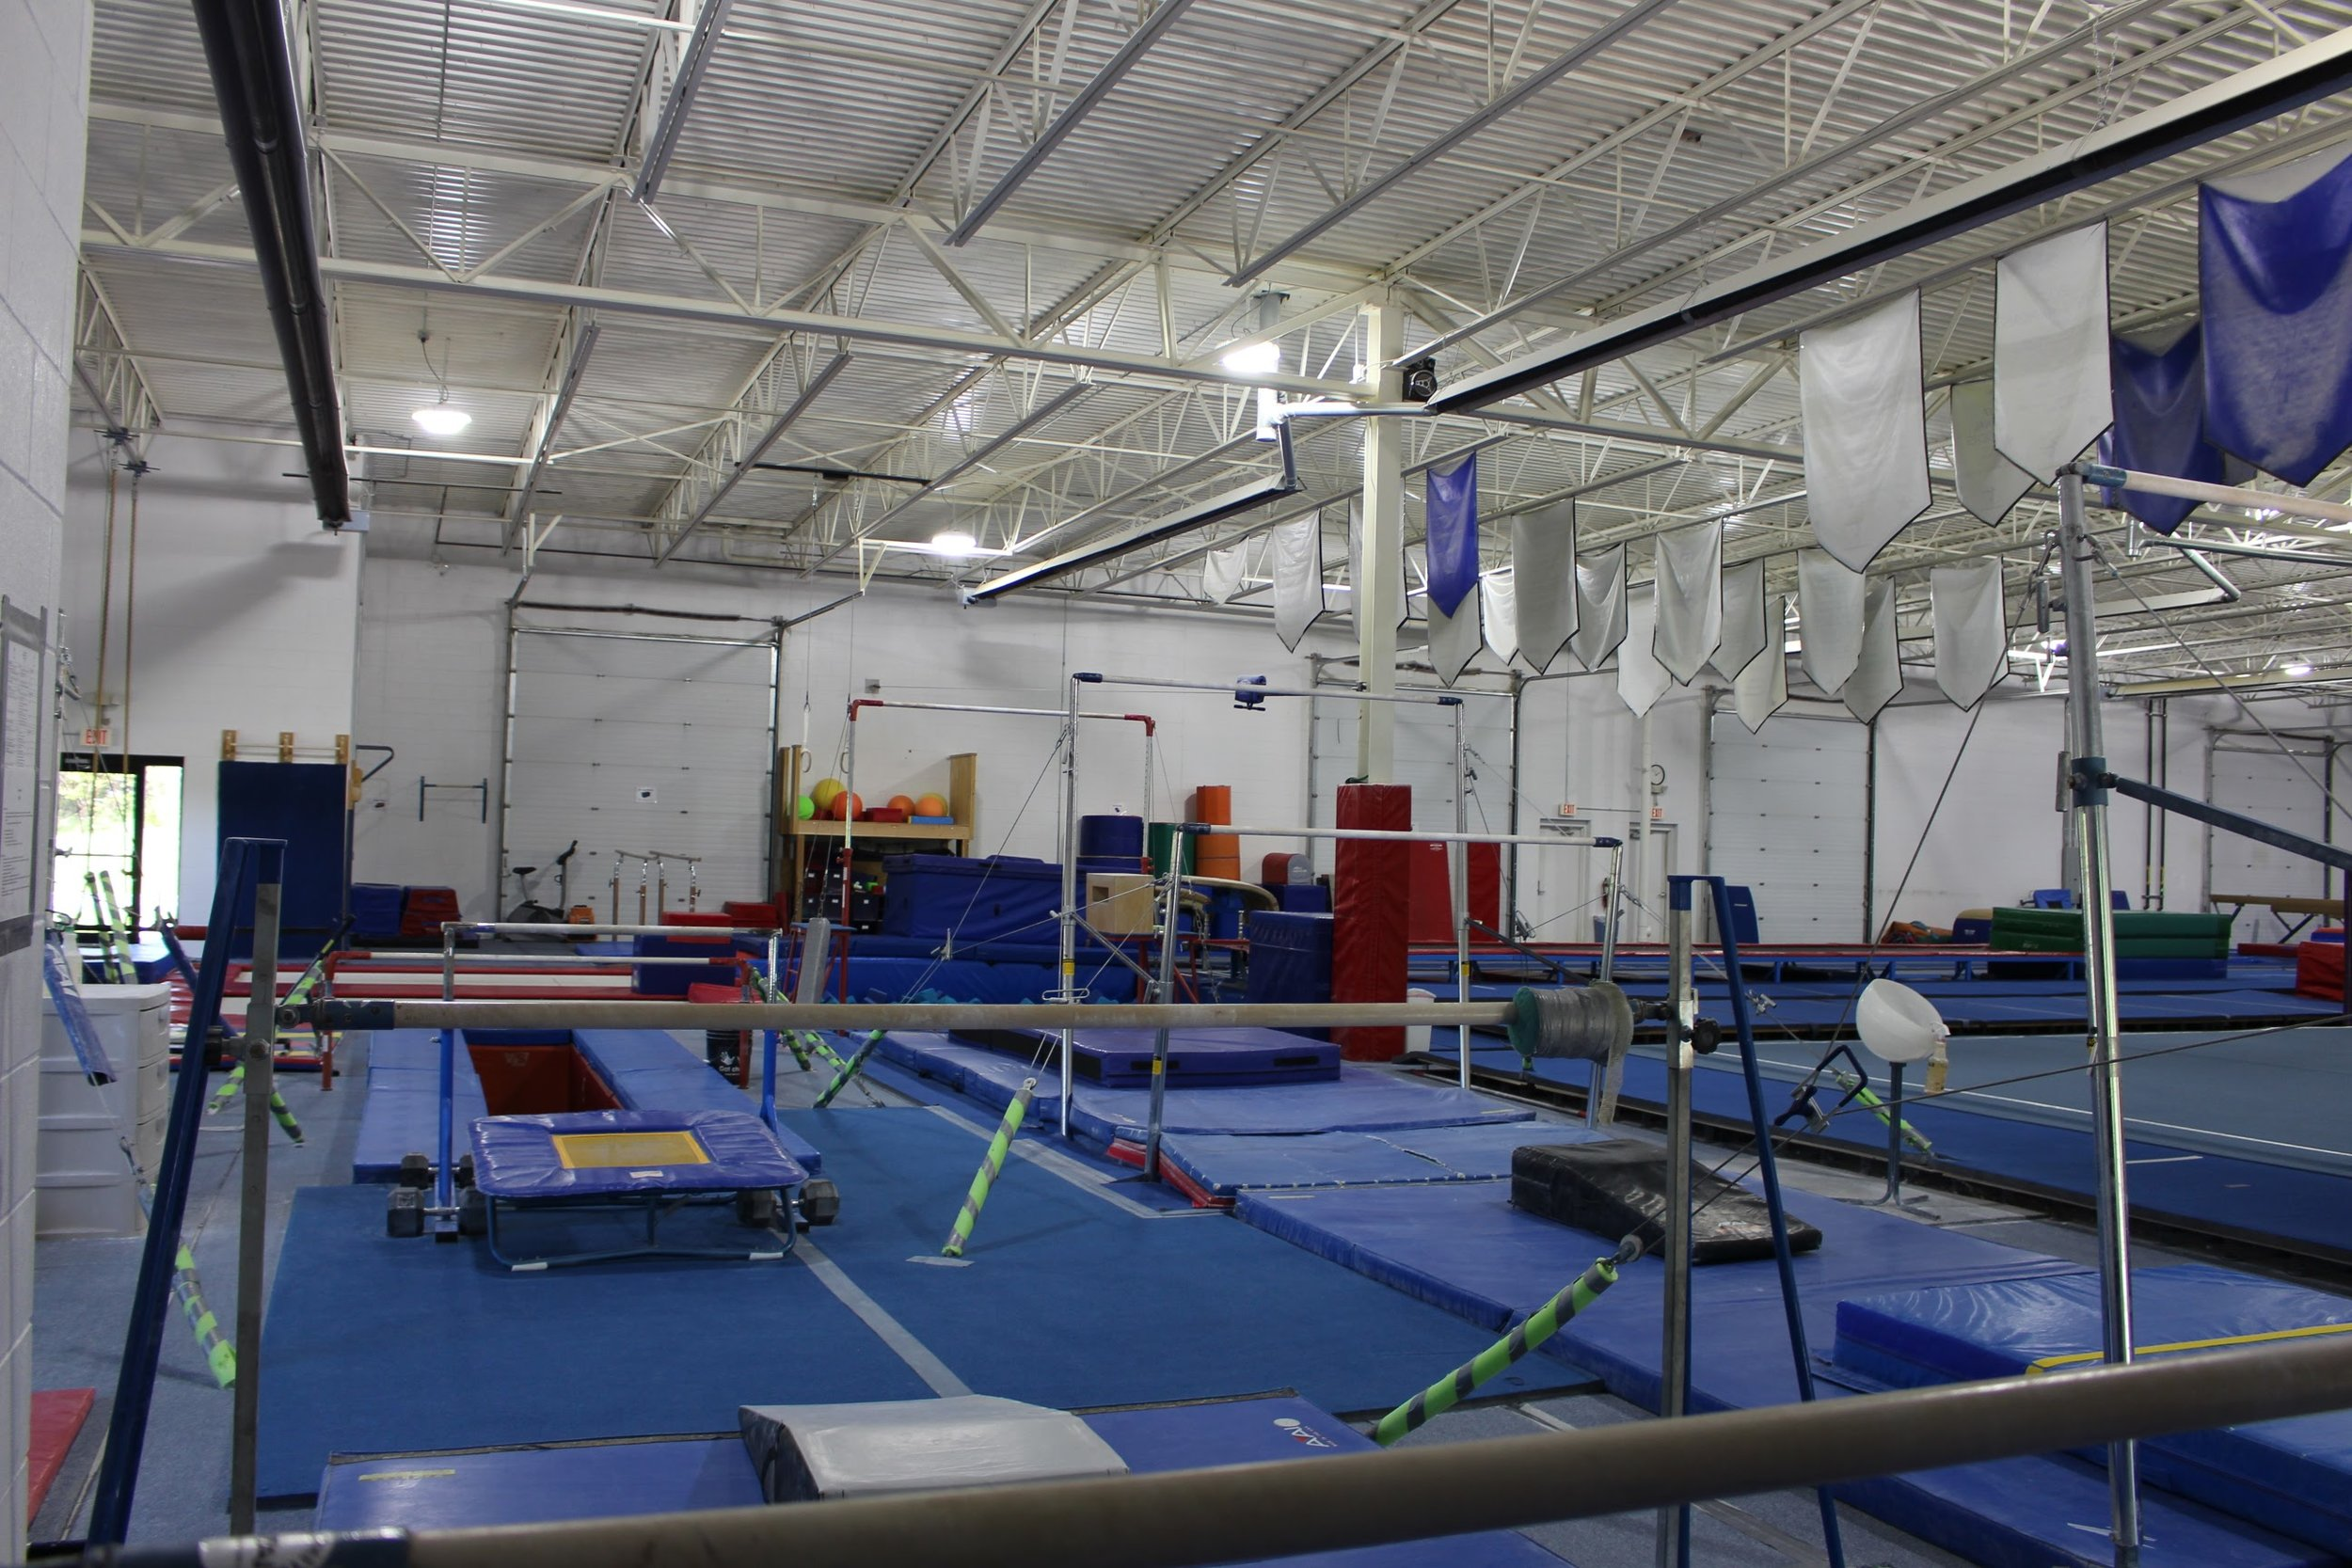 Open Gym - Open gym is a great time to practice movements outside of class and competitions. Instructors are present for supervision and safety.Learn More →